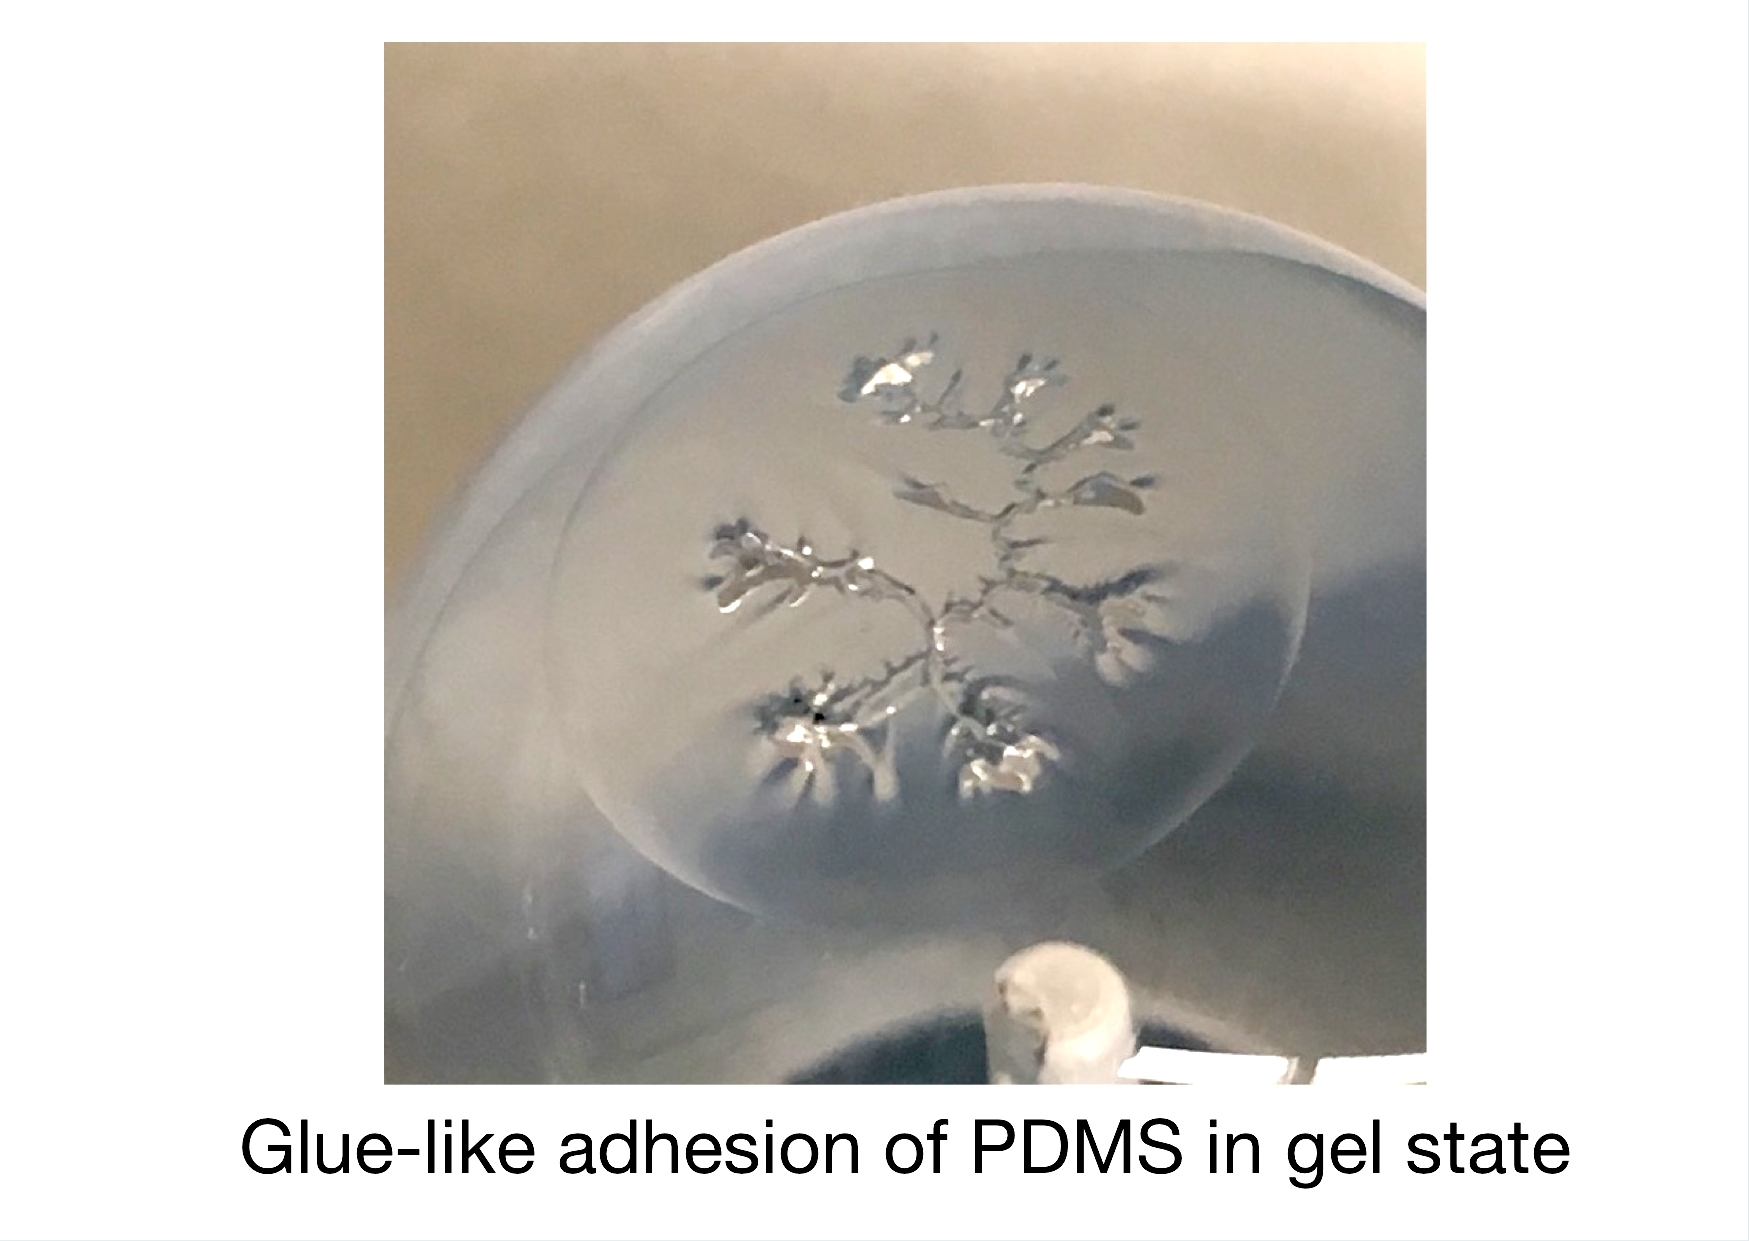 Adhesion between polydimethylsiloxane (PDMS) and a glass ball is observed in the process of transformation of PDMS from a viscous liquid to viscoelastic solid.